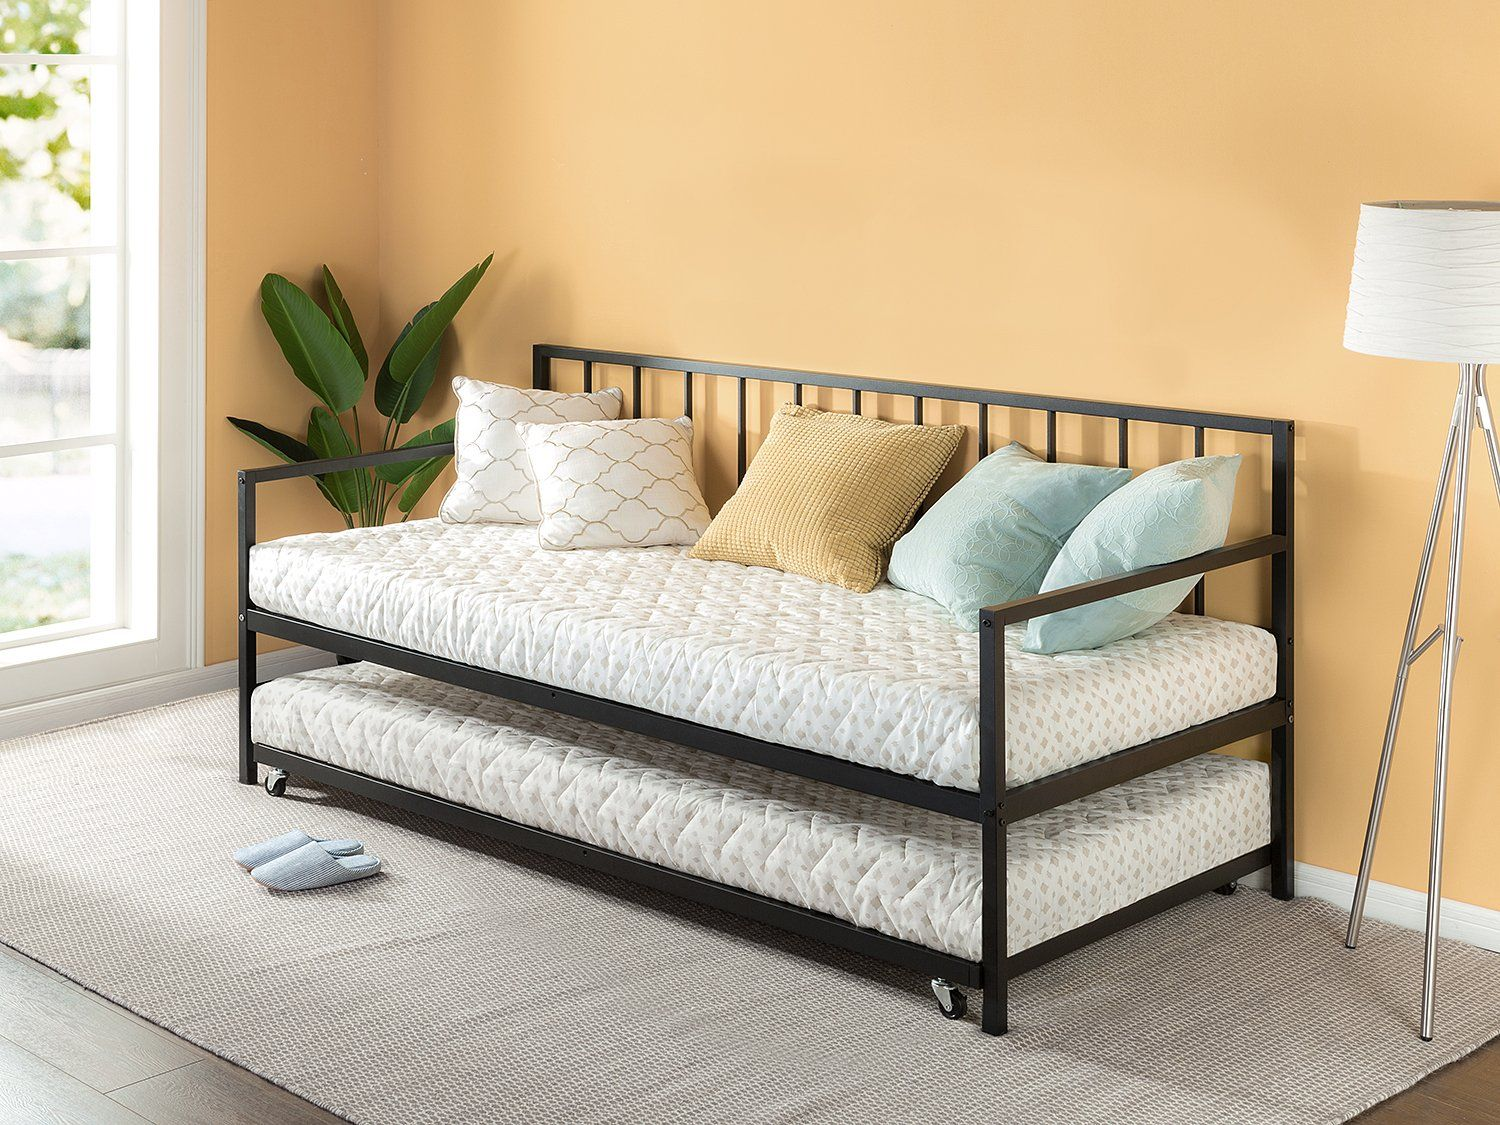 Zinus newport twin daybed and trundle set premium steel slat